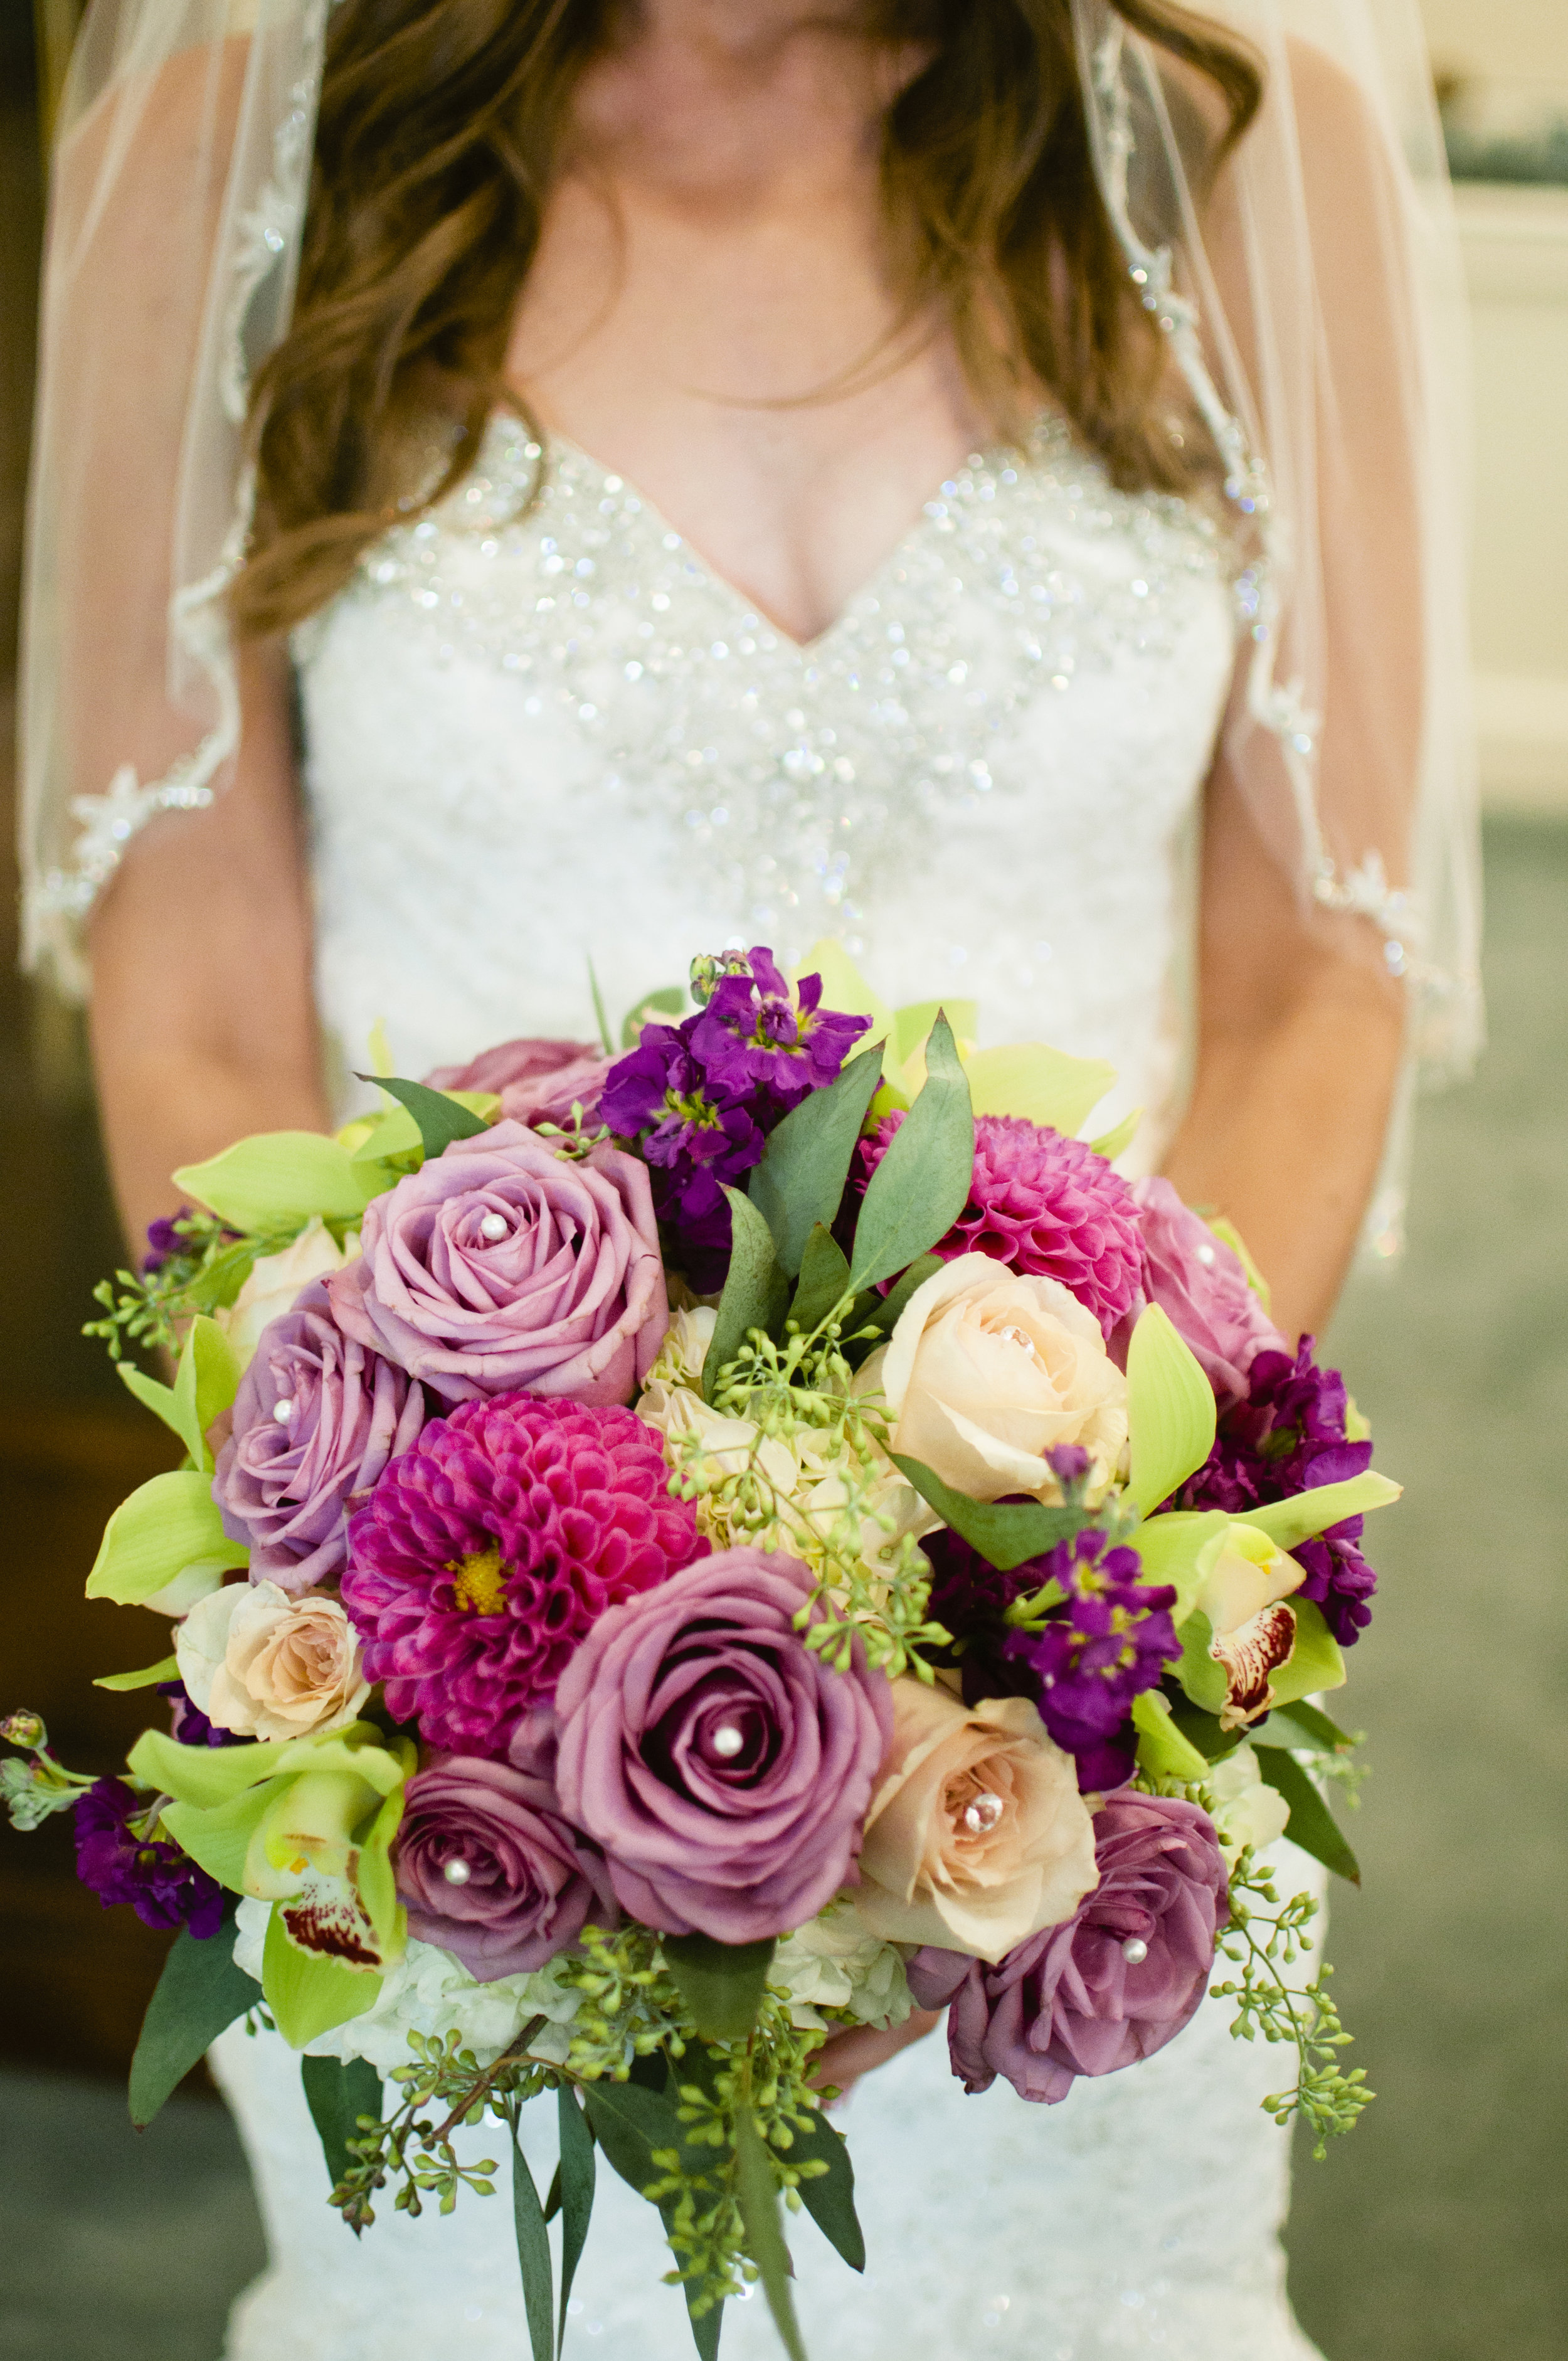 close up of bride holding bouquet with purple zinnias